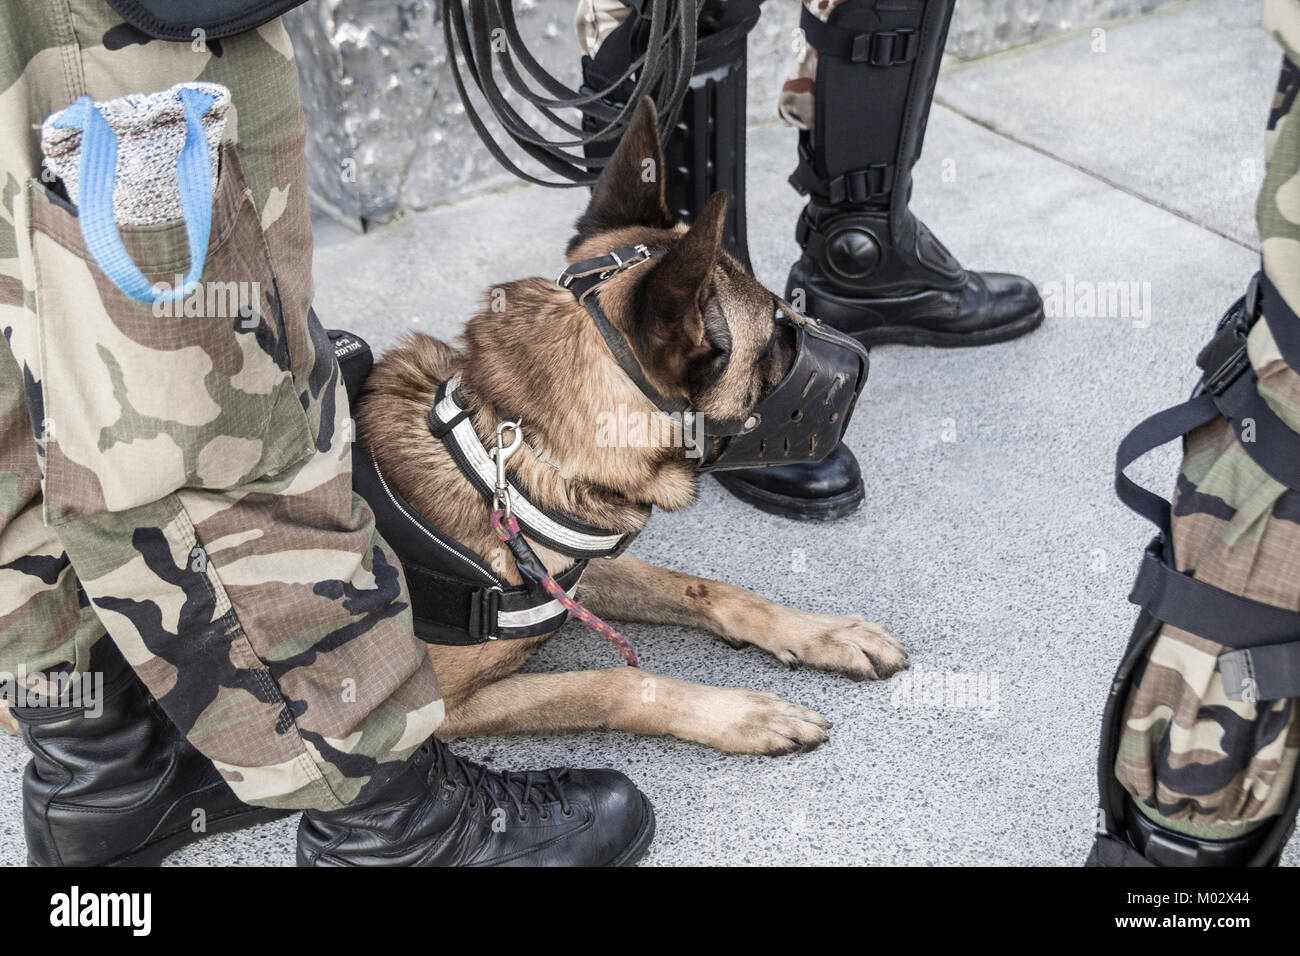 Military personnel with sniffer dog. Spain - Stock Image